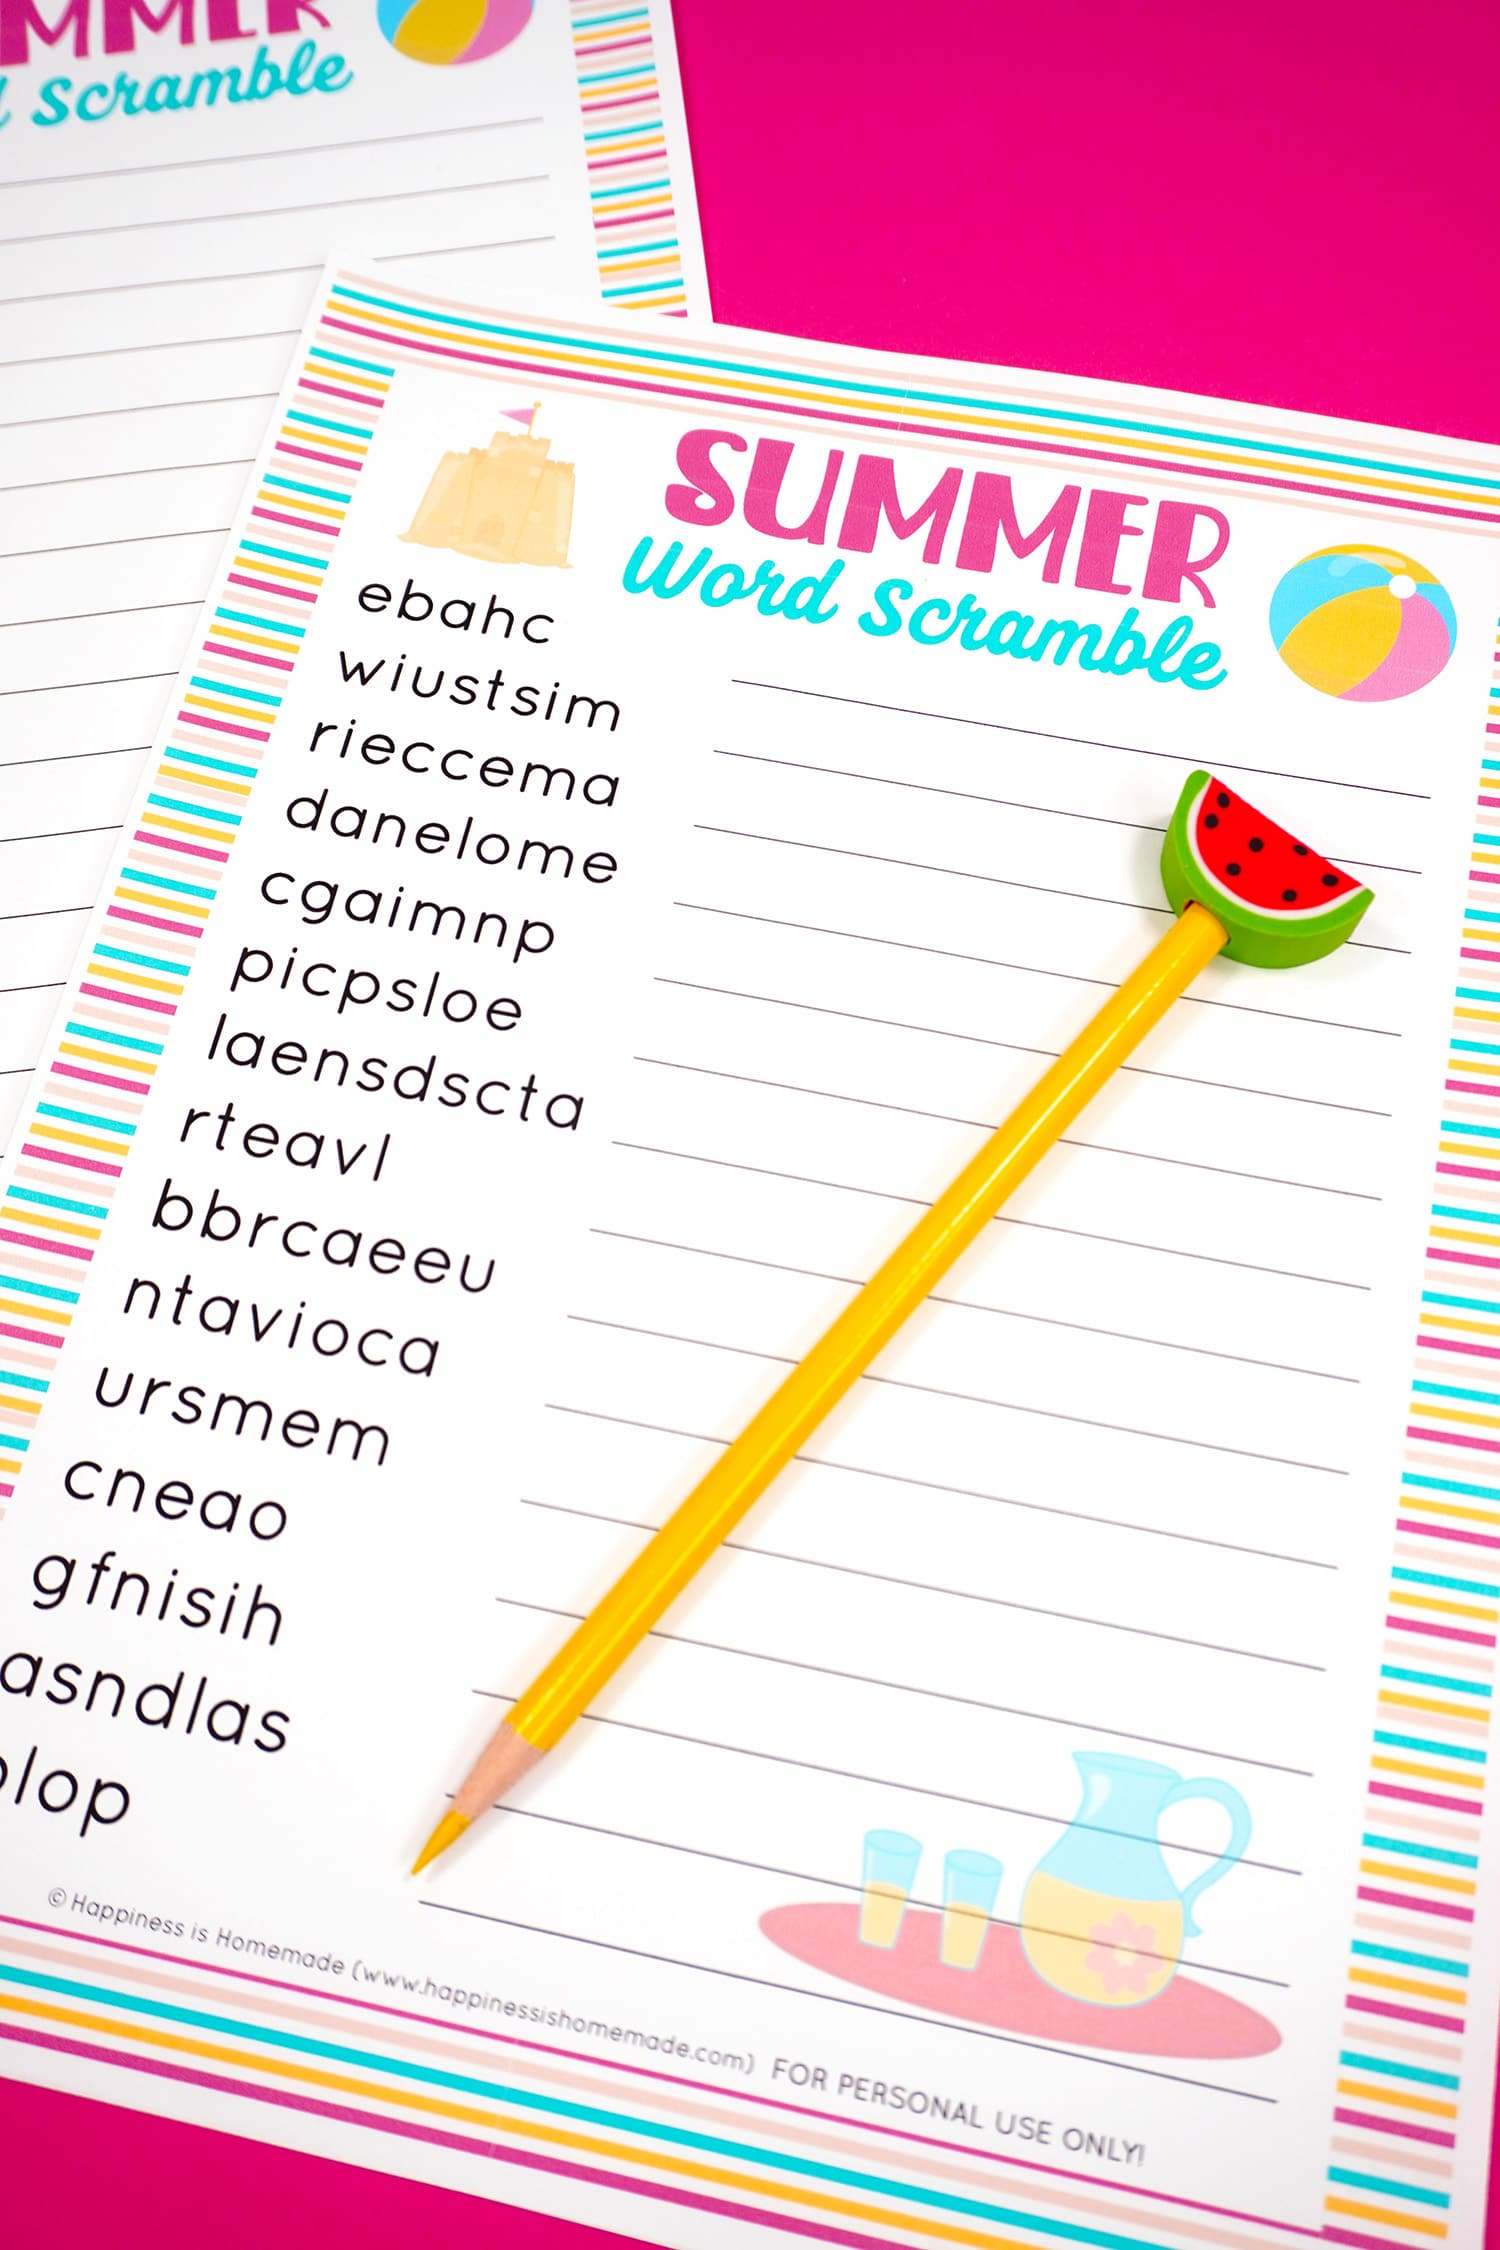 Summer Word Scramble printable game on pink background with yellow pencil with watermelon topper